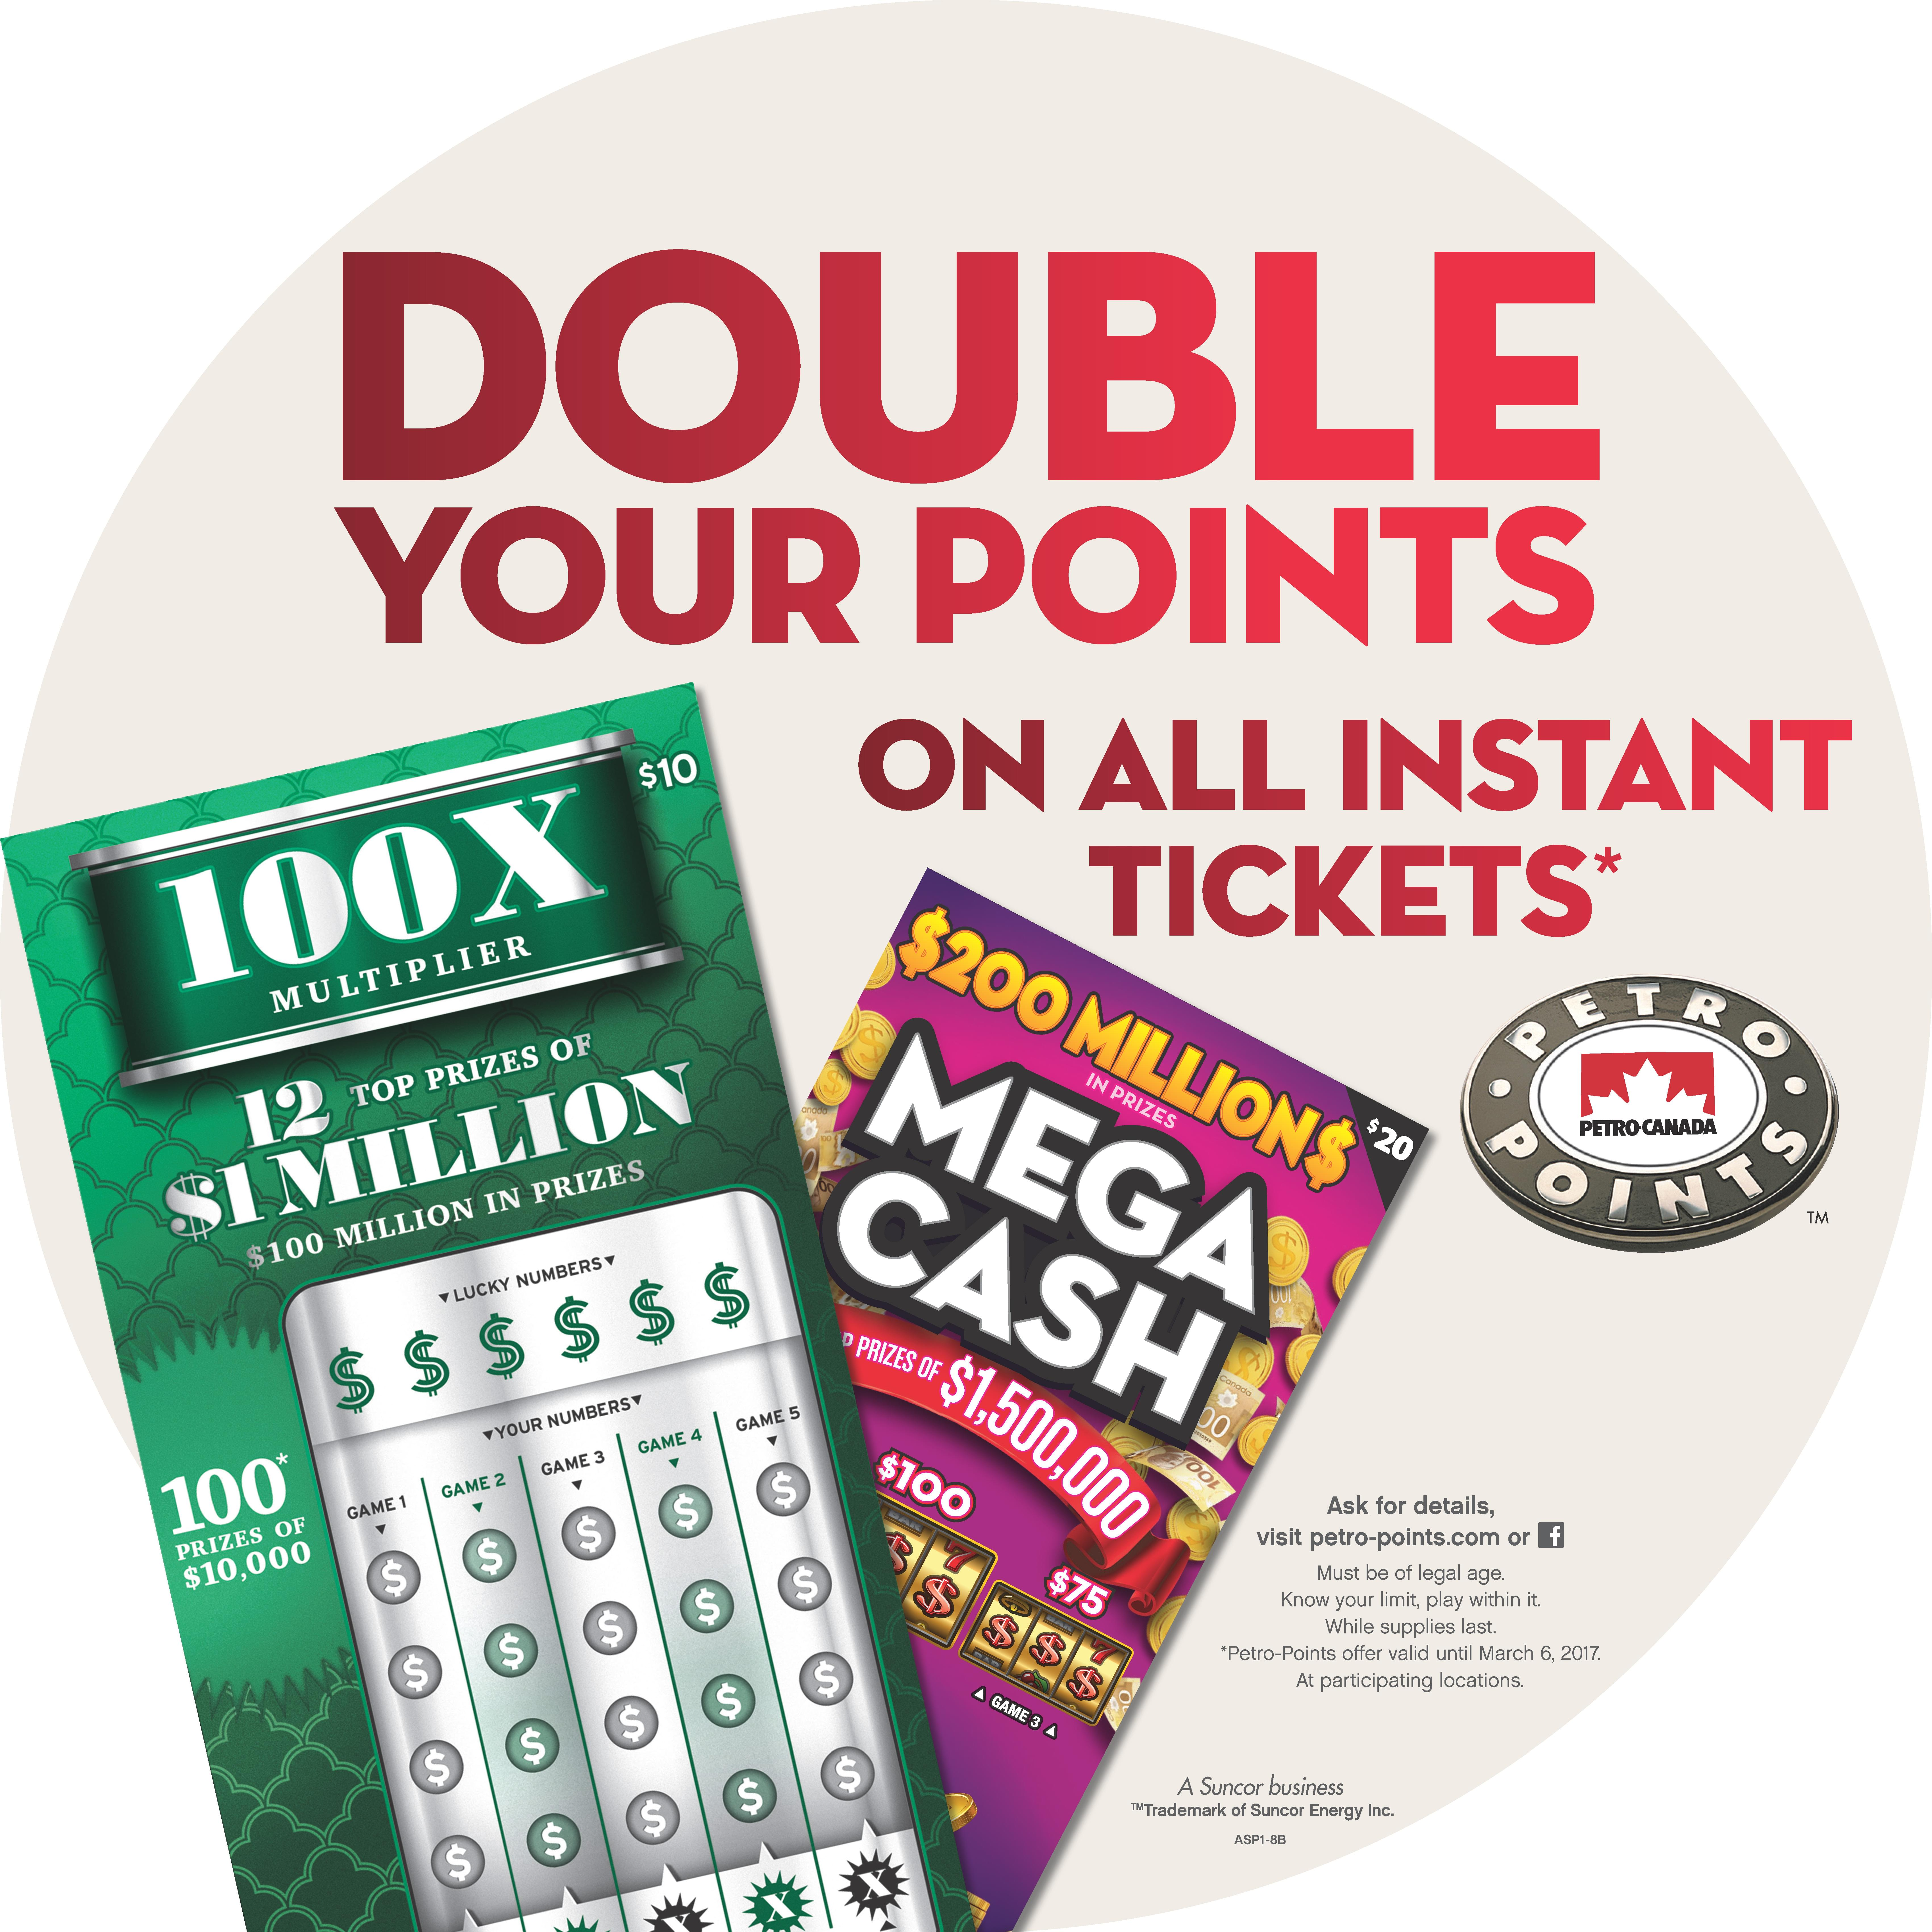 Double your points on all Instant tickets